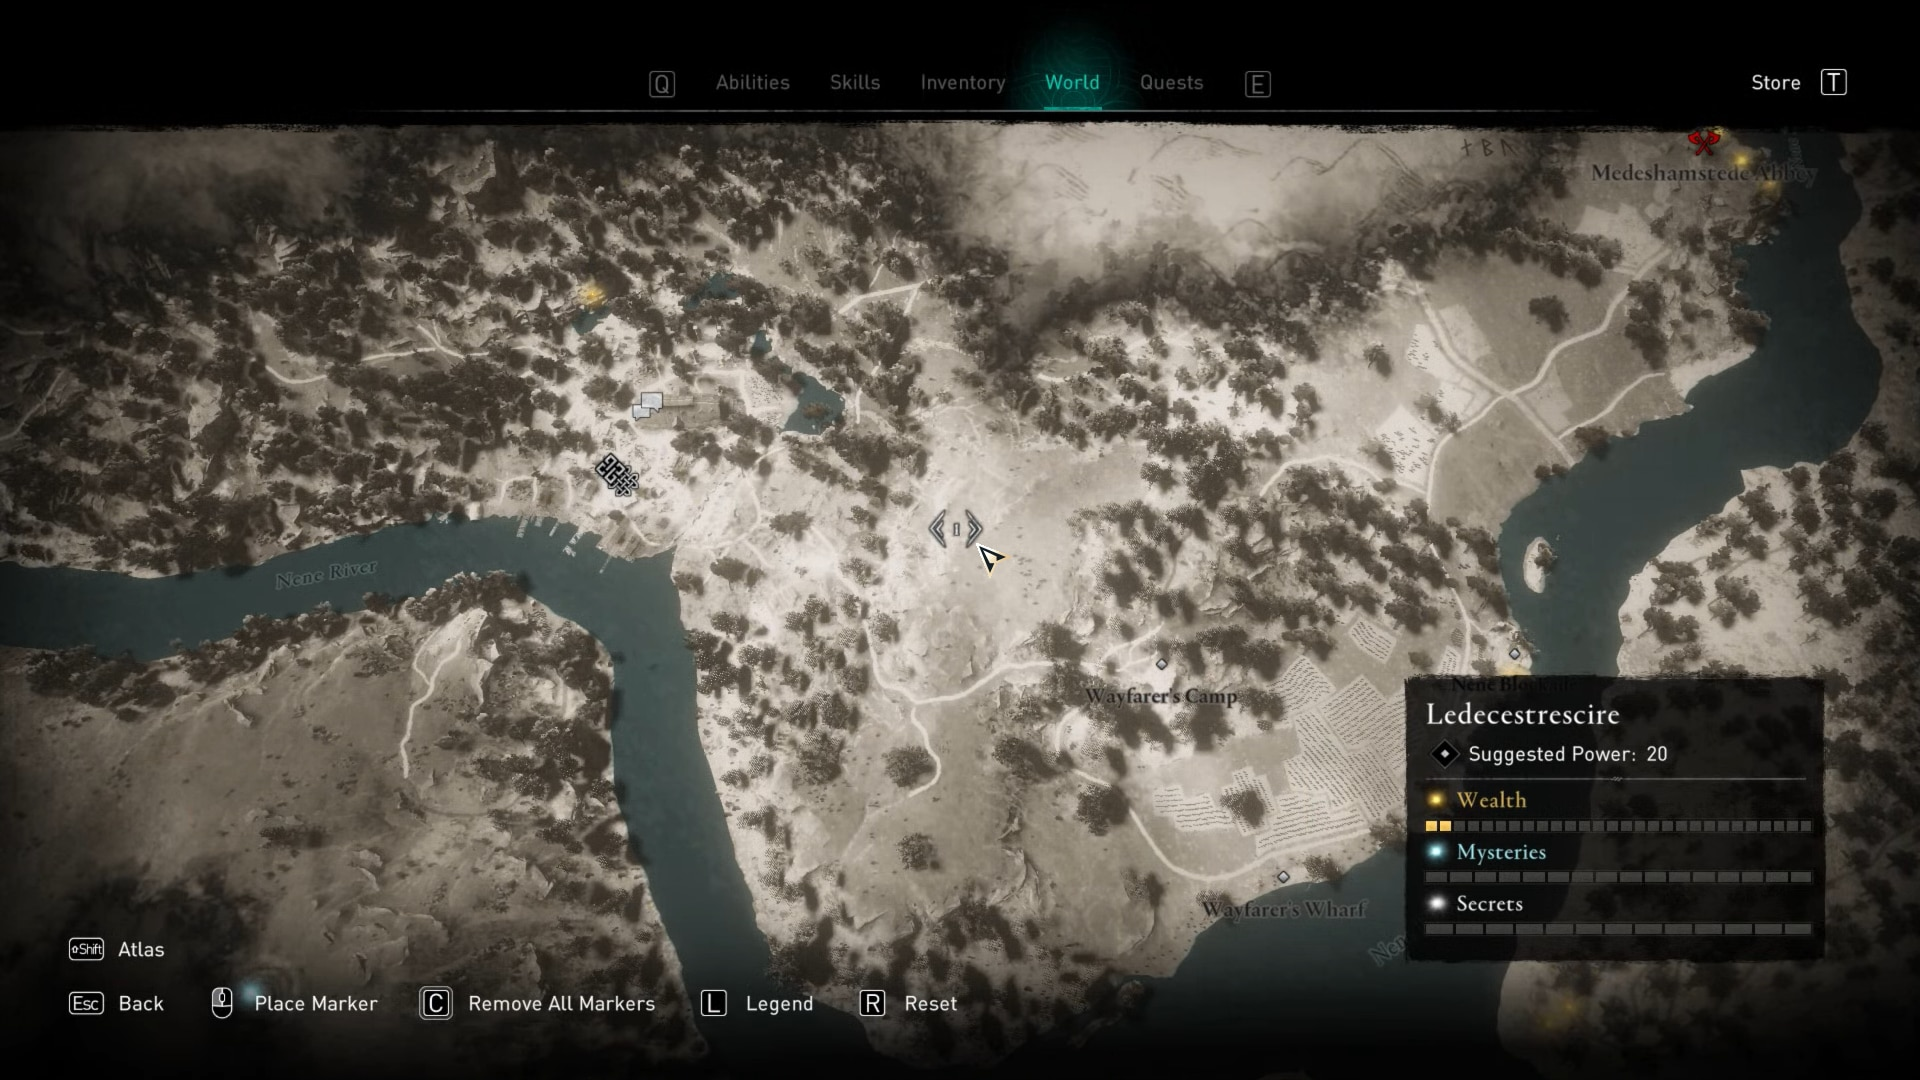 Custom map marker on the world map in Assassin's Creed Valhalla